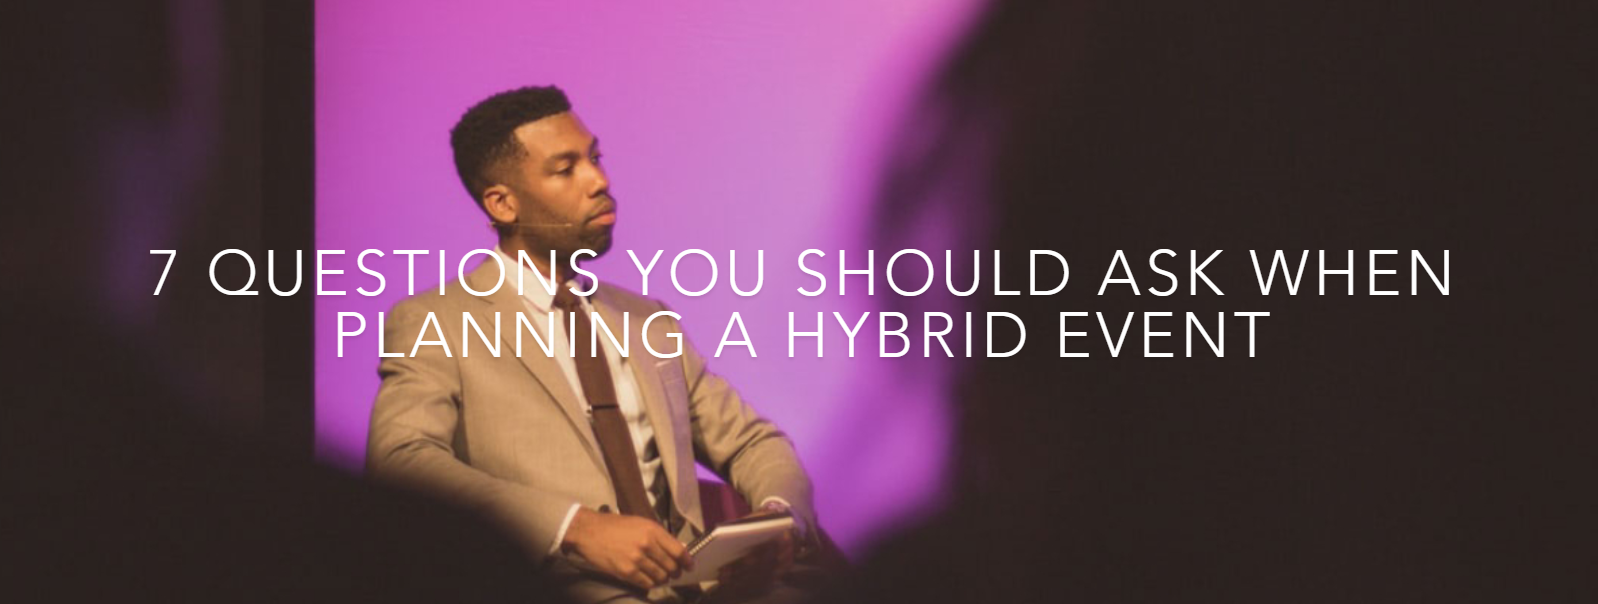 7 QUESTIONS YOU SHOULD ASK WHEN PLANNING A HYBRID  header internal